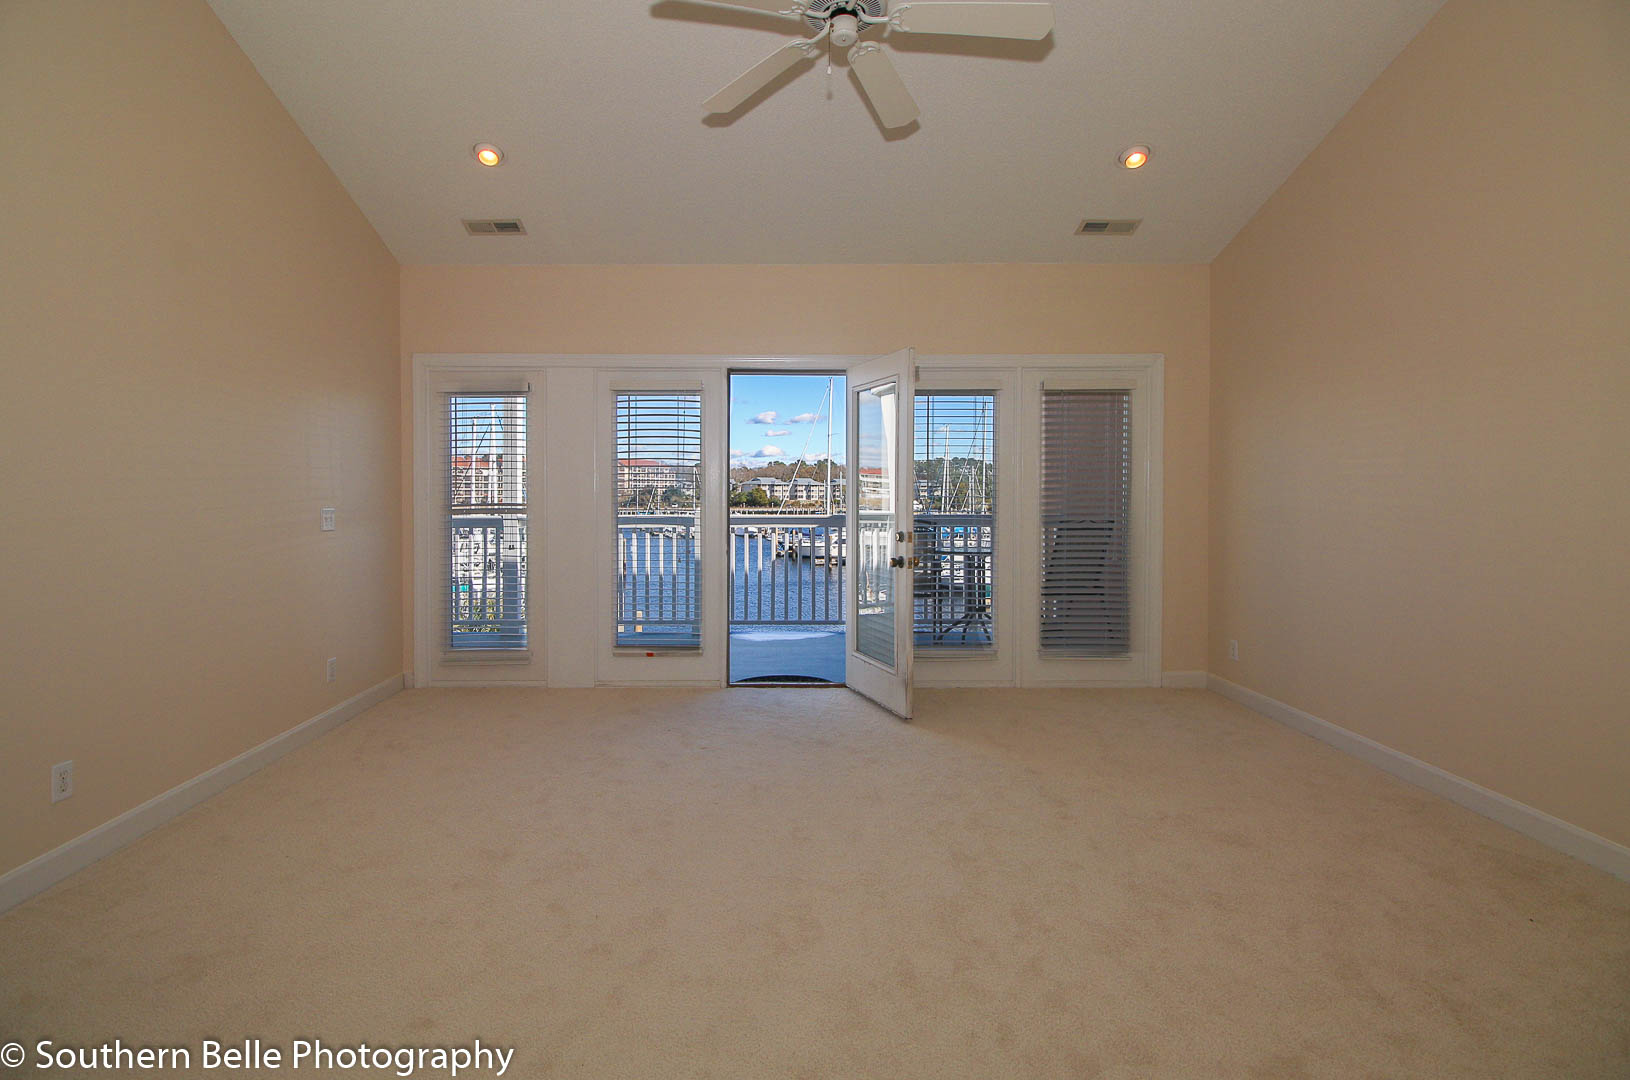 13. Livng Room with Intercoastal View WM